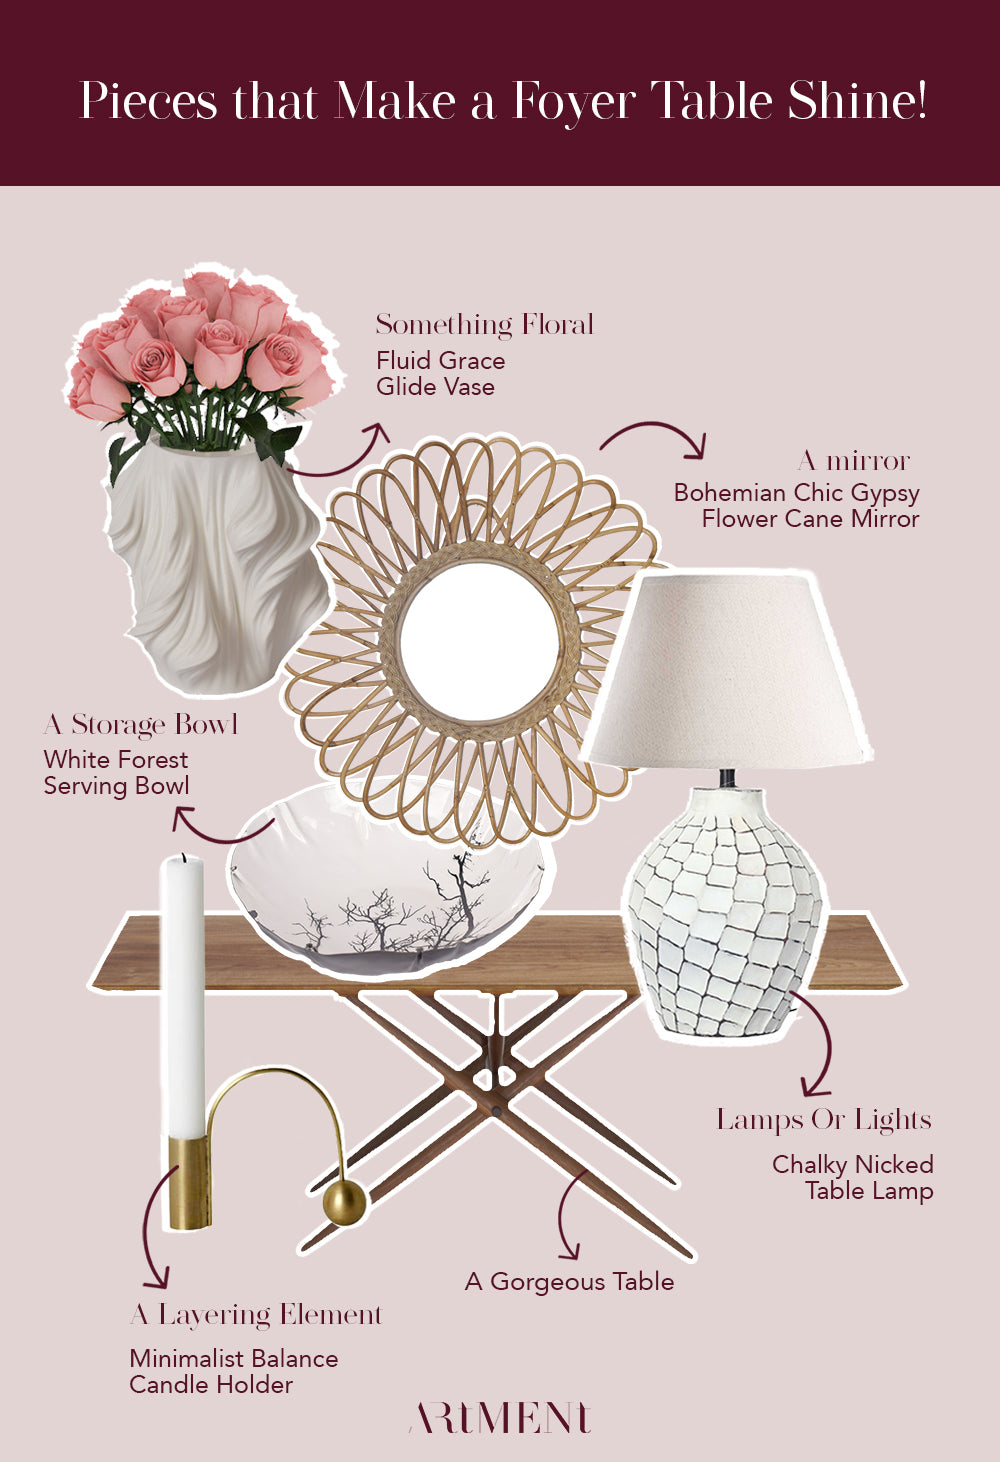 Foyer Table Elements and how to Style Them